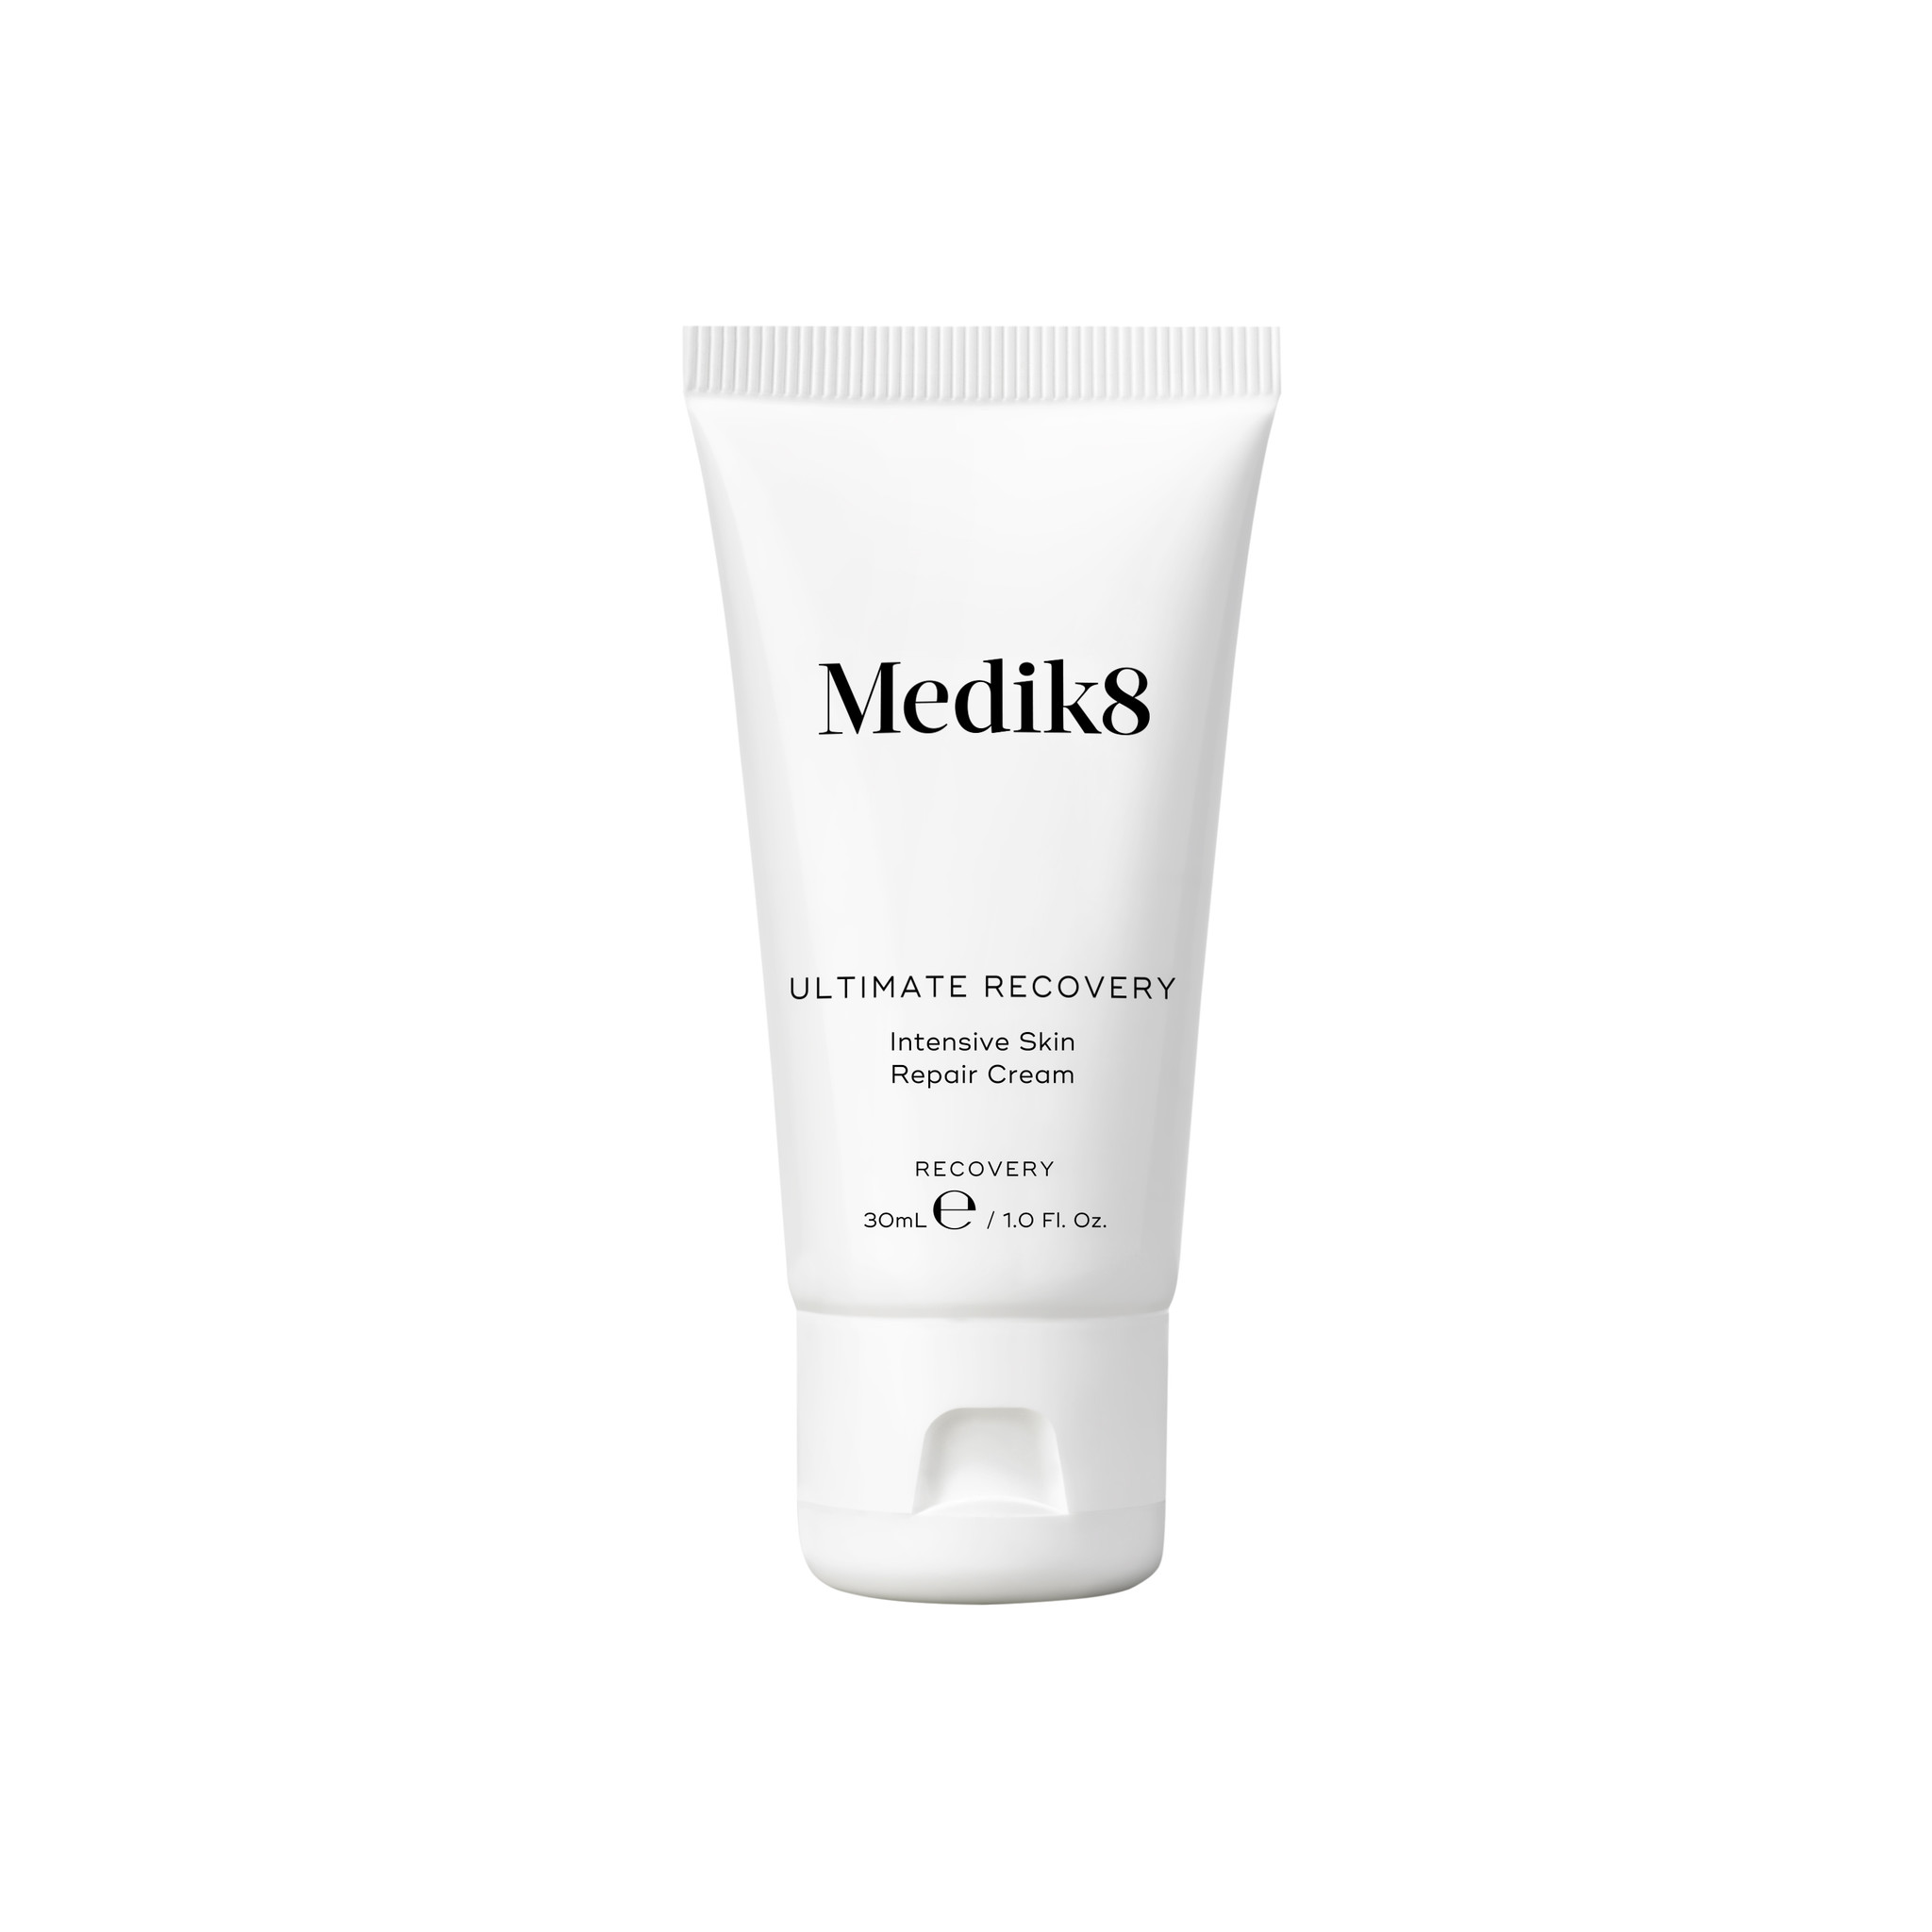 Medik8 Medik8 Ultimate Recovery 30ml